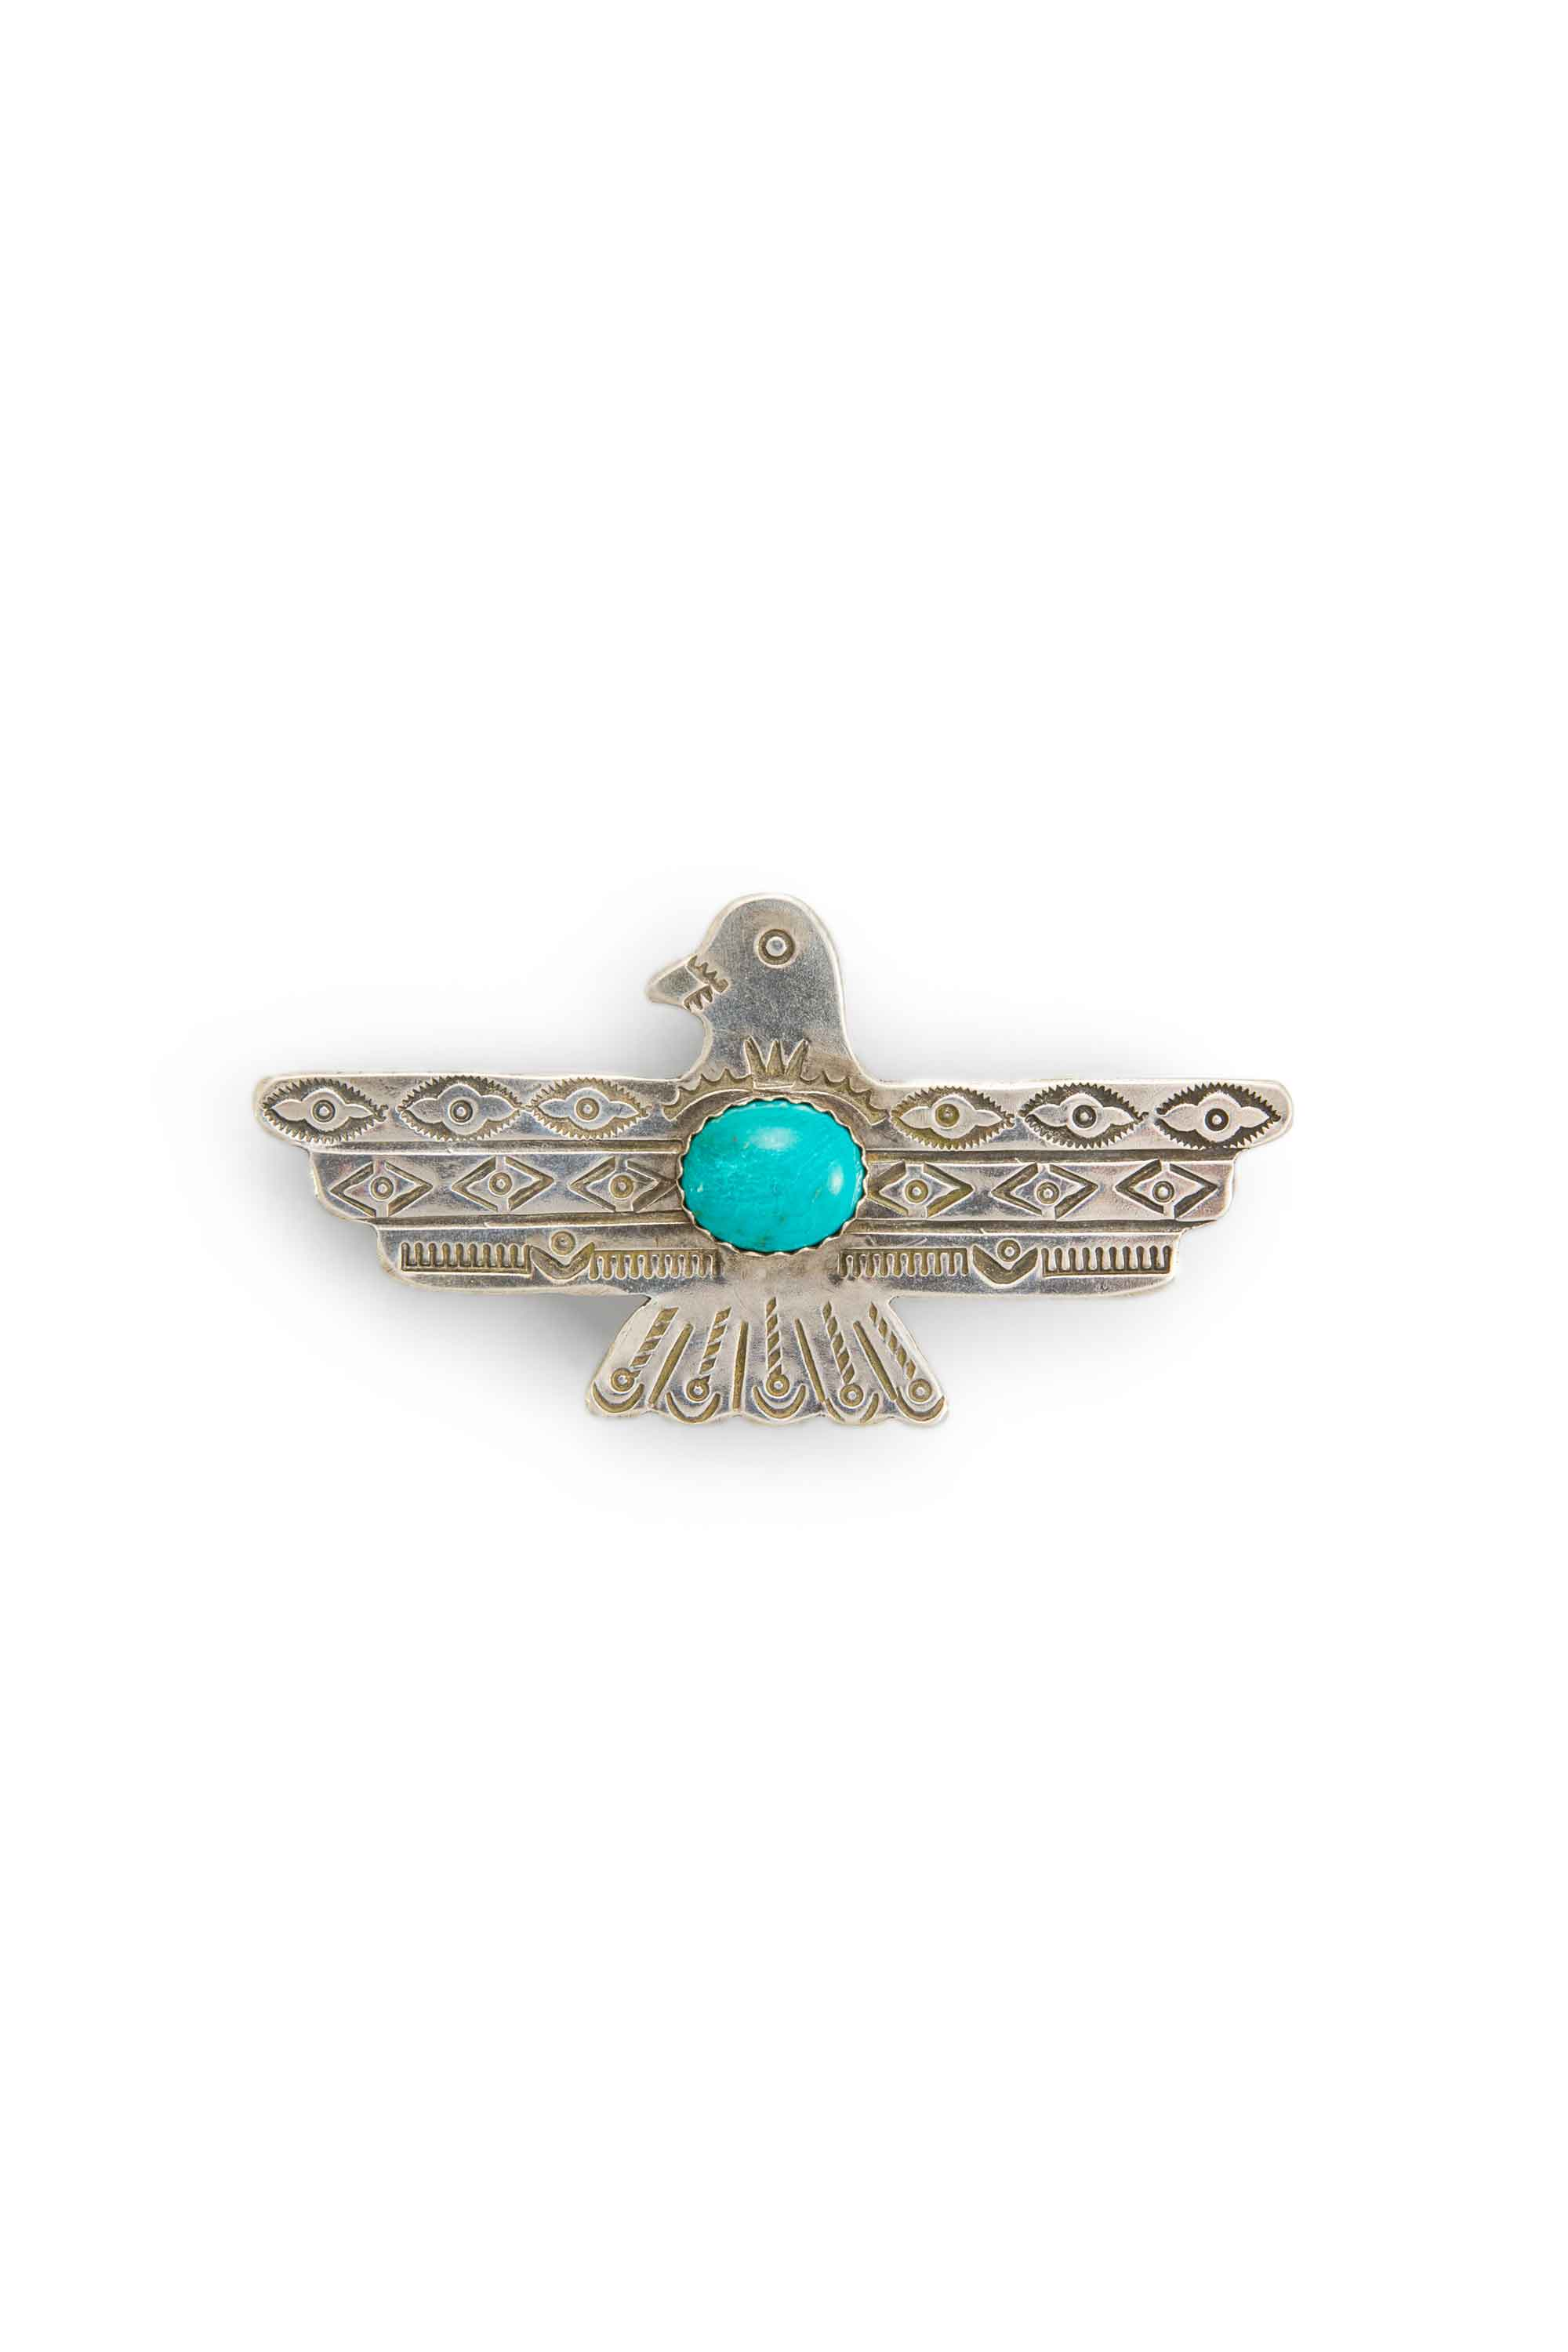 Pin, Collection, Thunderbird, Soaring Spirit